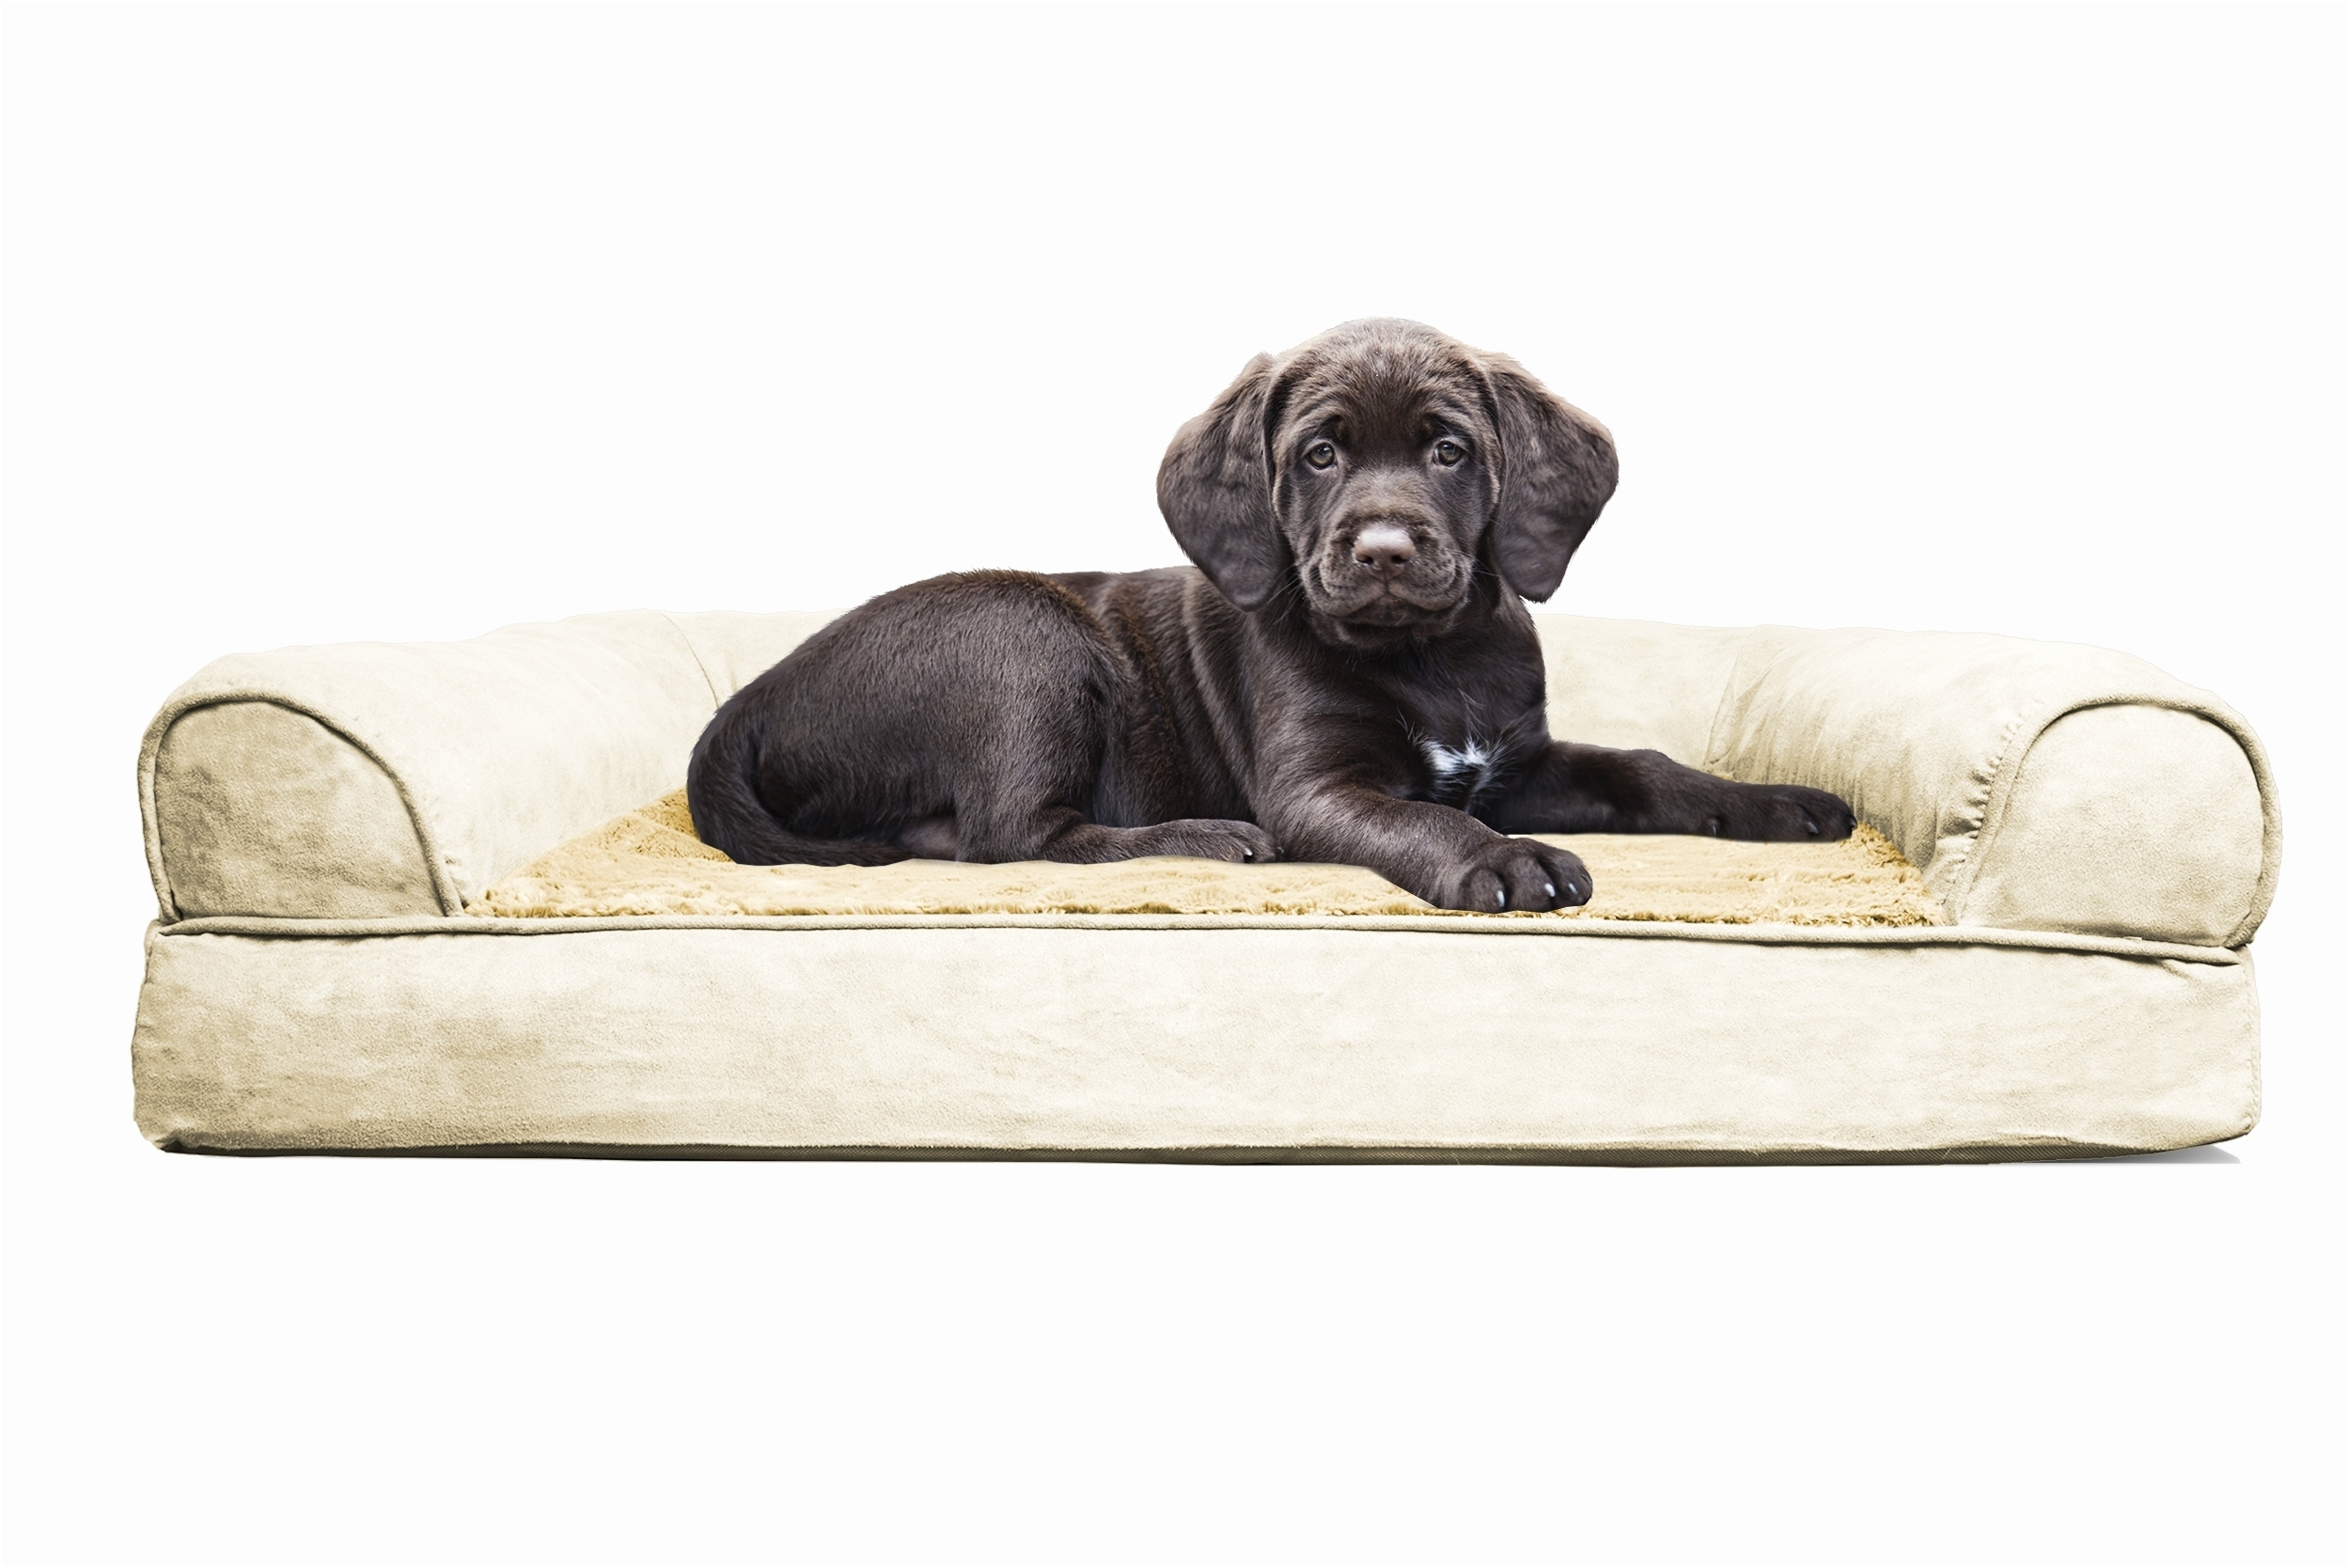 Recent Sofas : Leather Dog Couch Small Pet Sofa Leather Dog Chair Dog Pertaining To Dog Chaise Lounges (View 13 of 15)